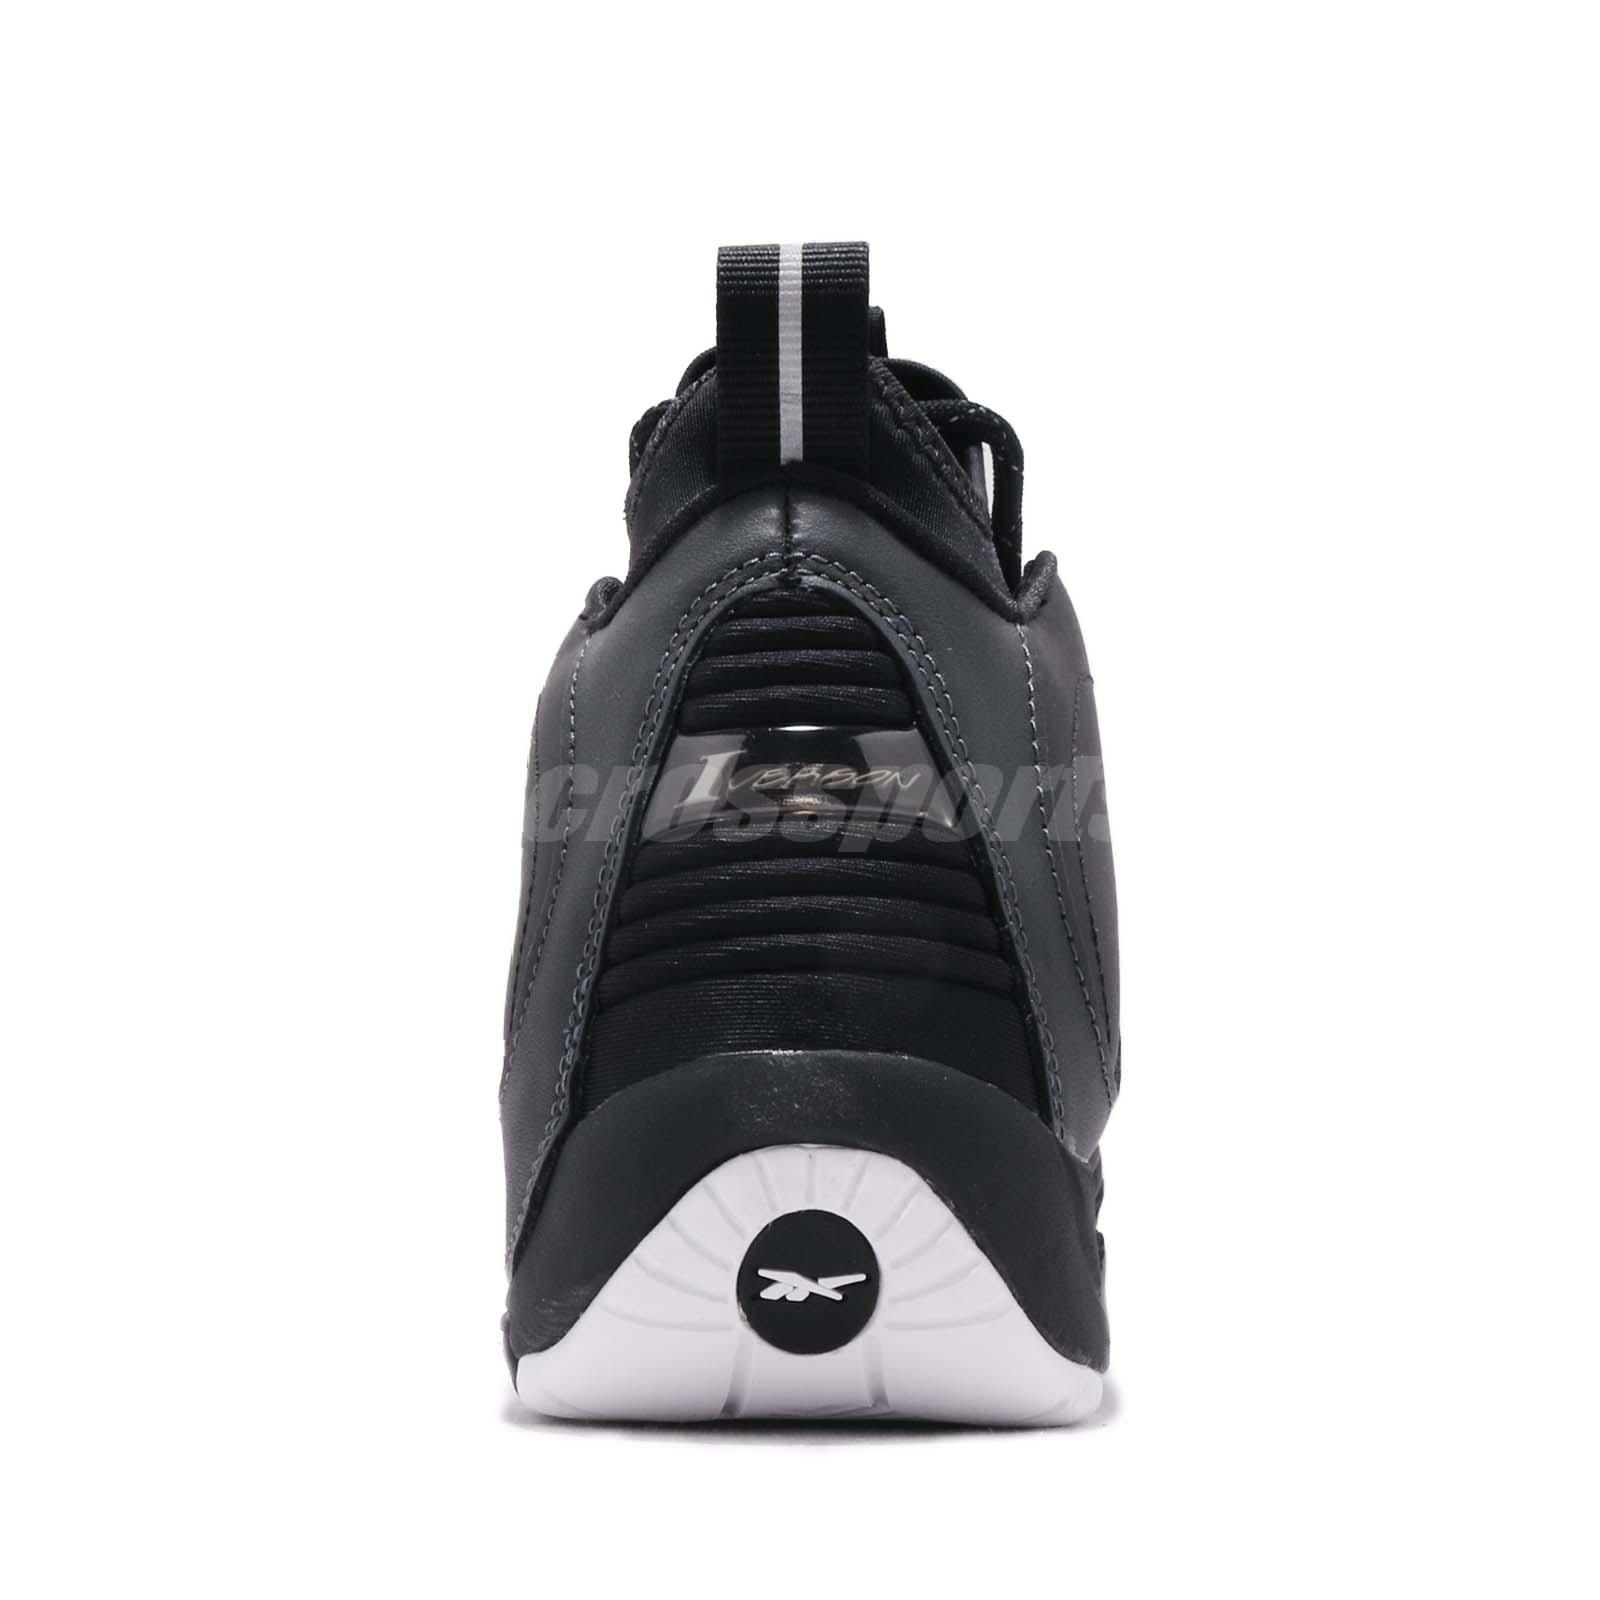 Reebok Answer Iv.v 4.5 Dmx Ai Allen Iverson I3 Black Men Basketball Shoes Cn6849 Clothing, Shoes & Accessories